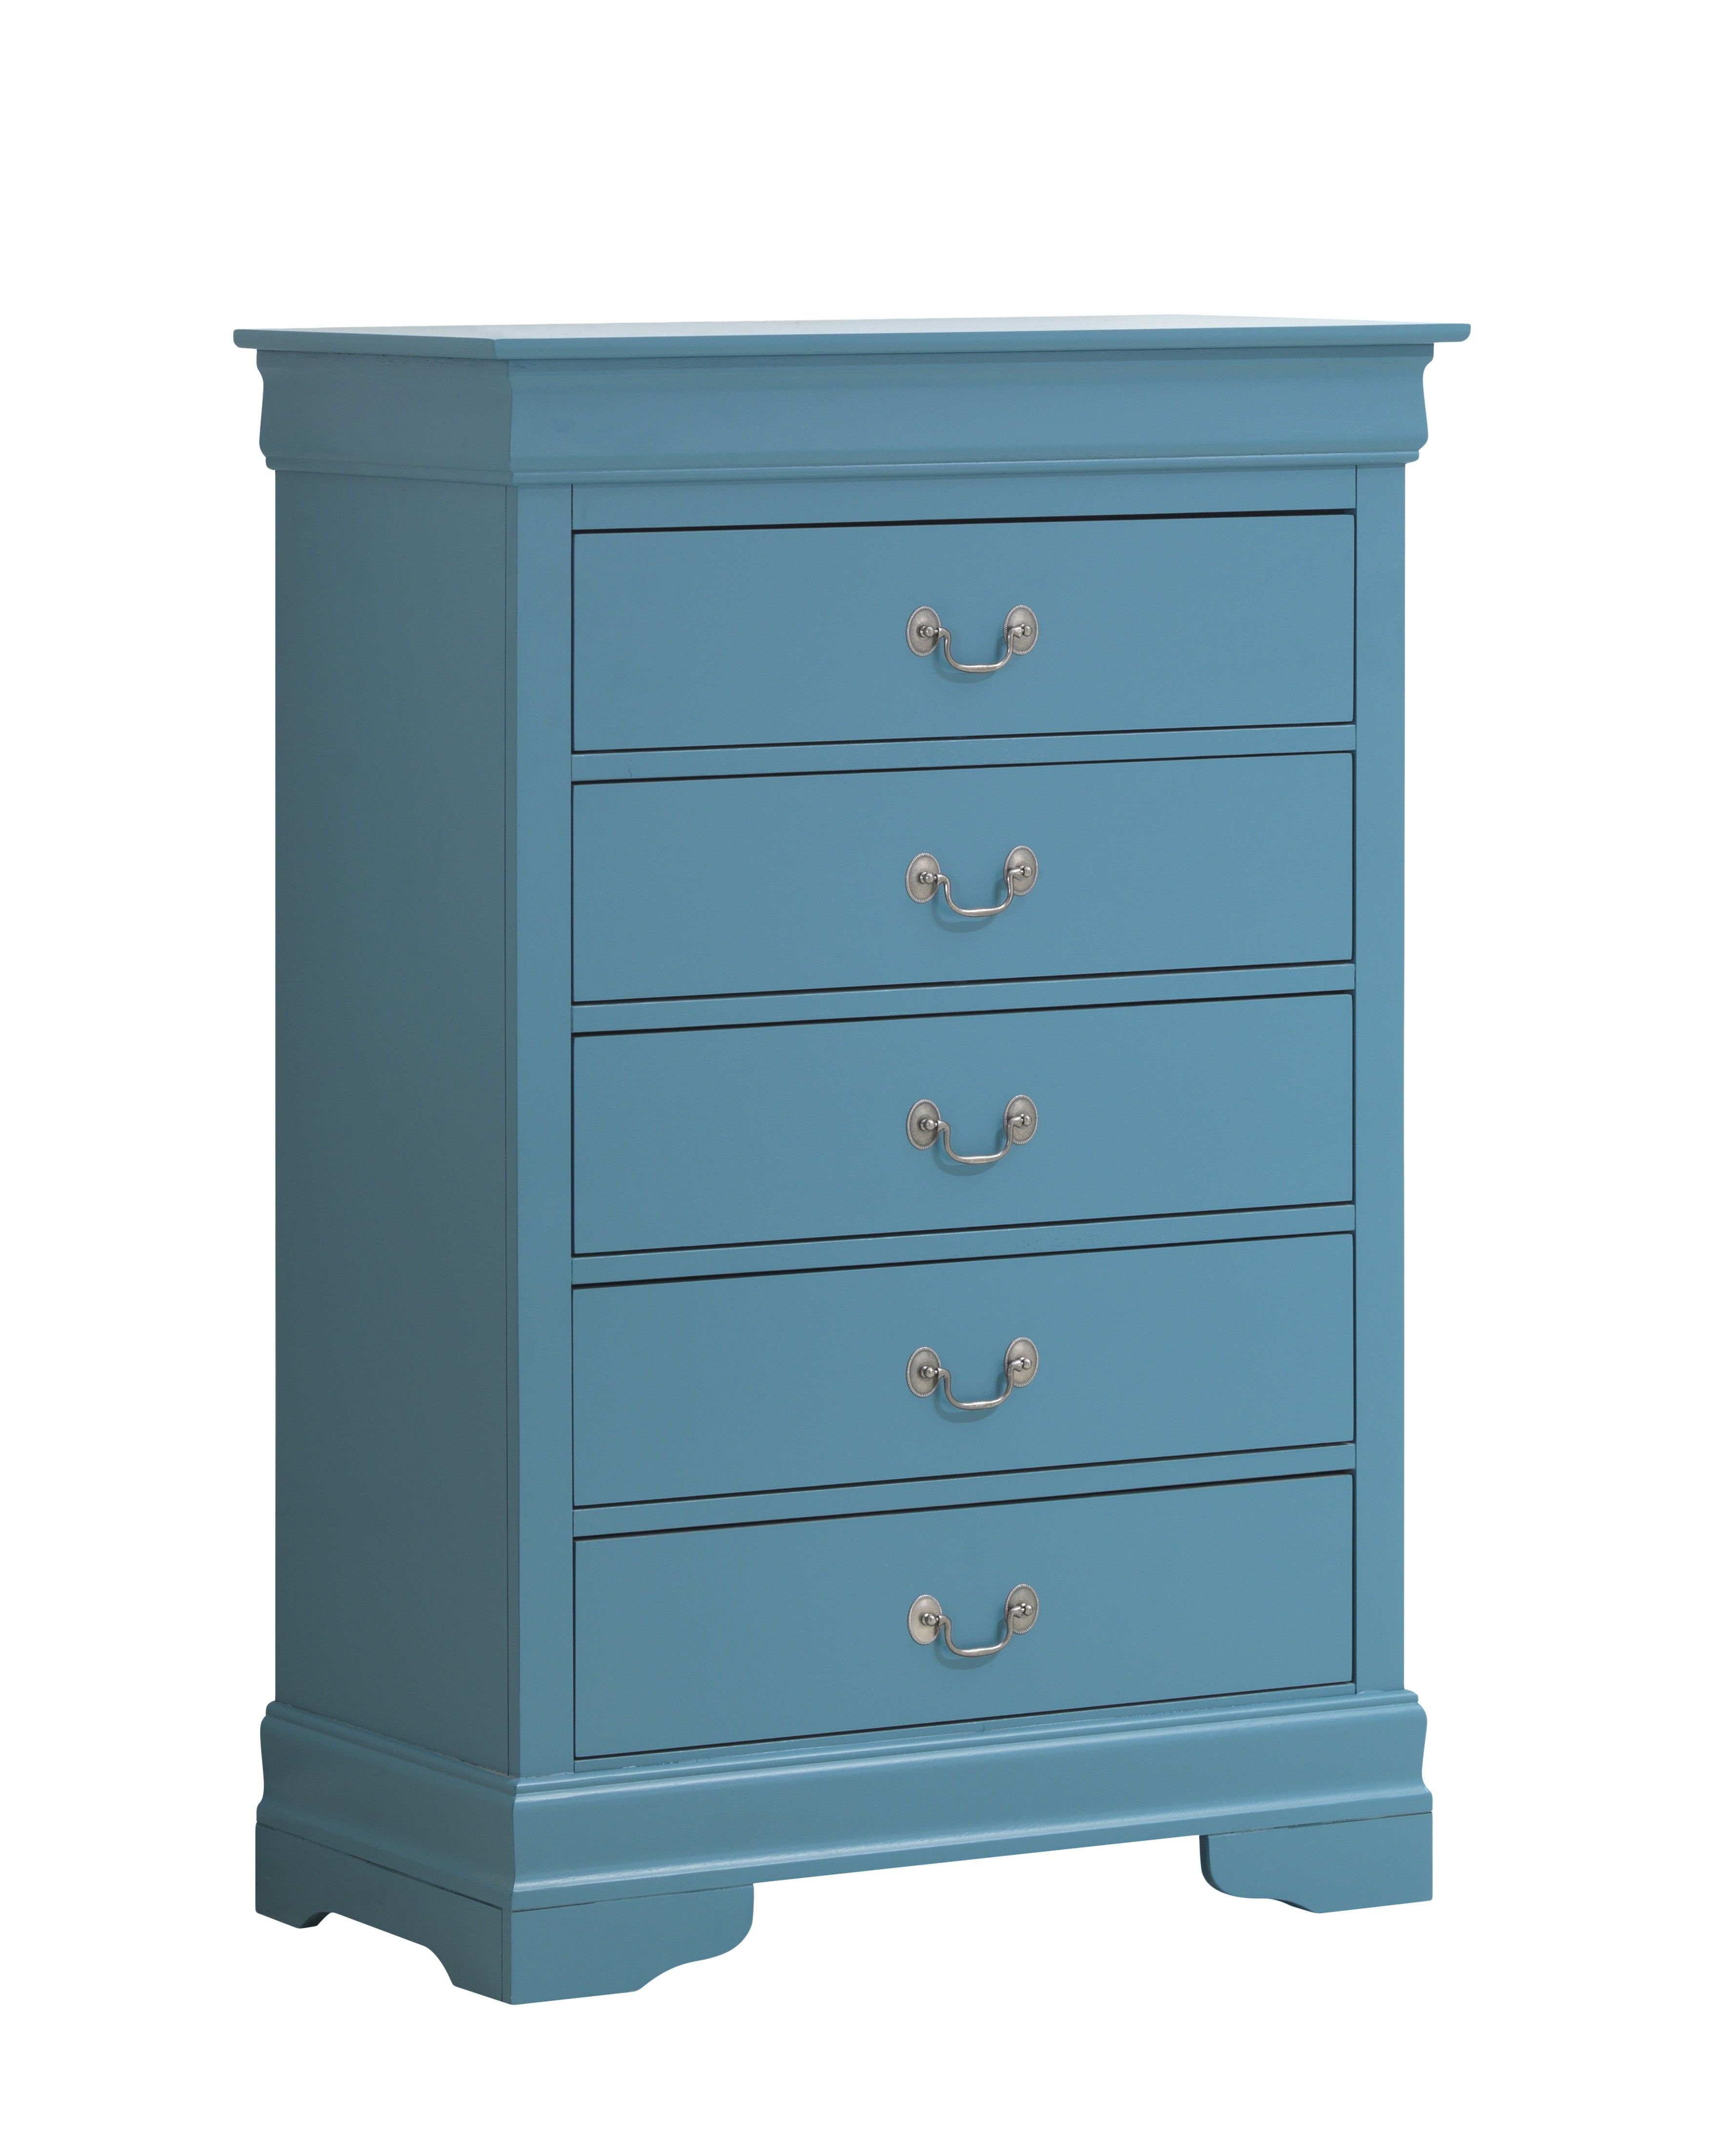 Teal Wood 5 Drawer Chest With Silver Curved Metal Handles | Hot ...